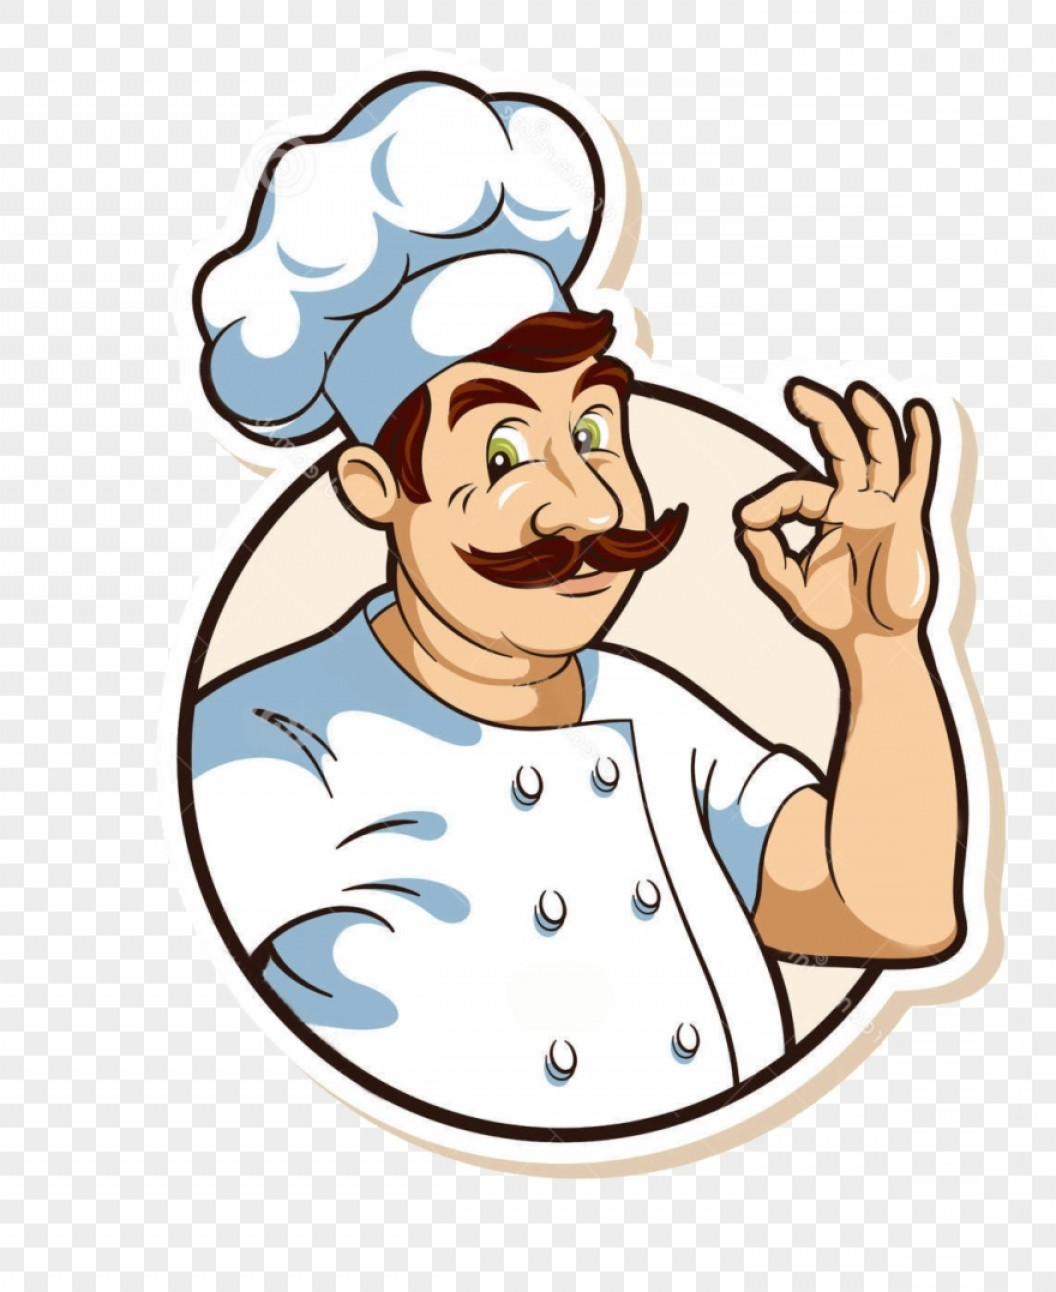 Clipart cook vector freeuse stock Imbmhvector Library Stock Chefs Clipart Cooking Demo Chief | SOIDERGI vector freeuse stock